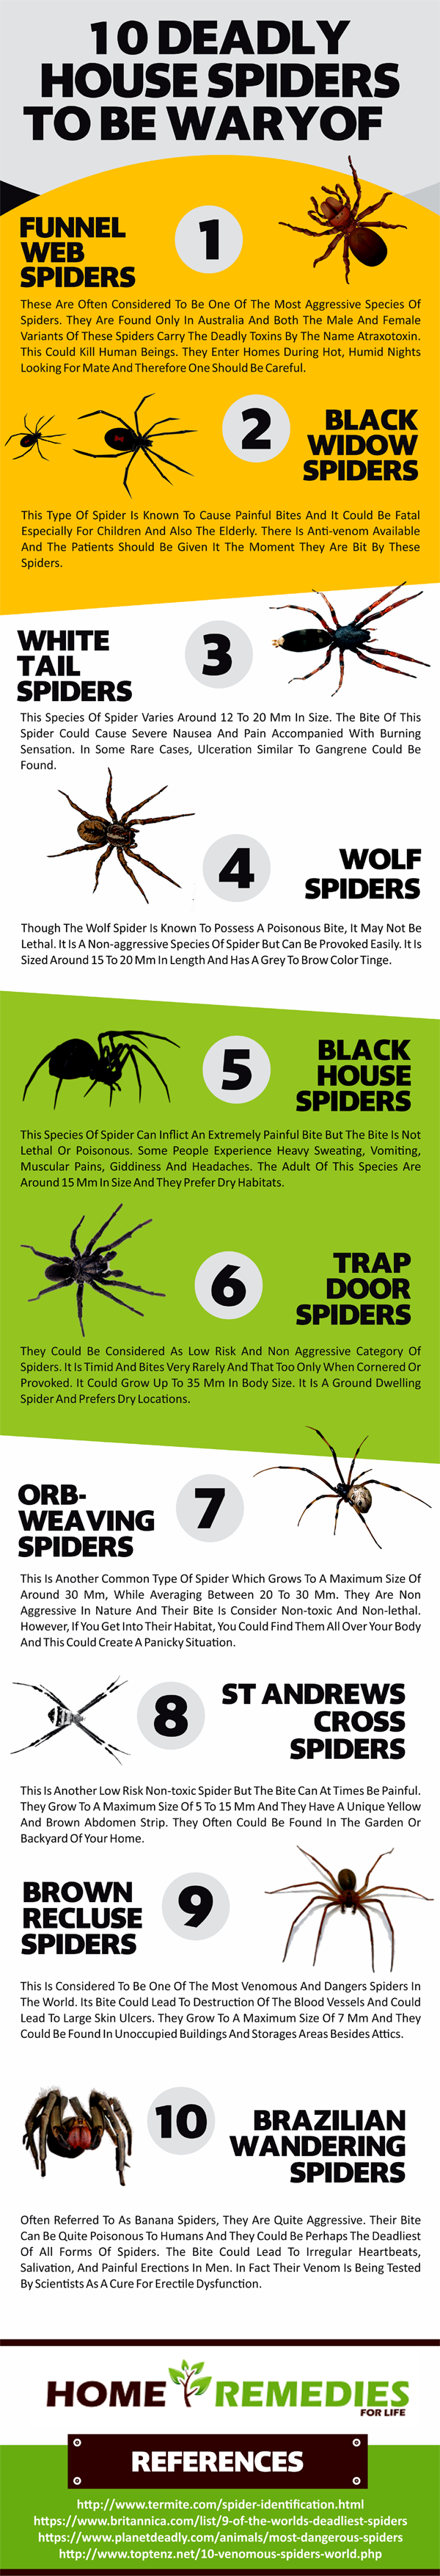 10-deadly-house-spiders.png